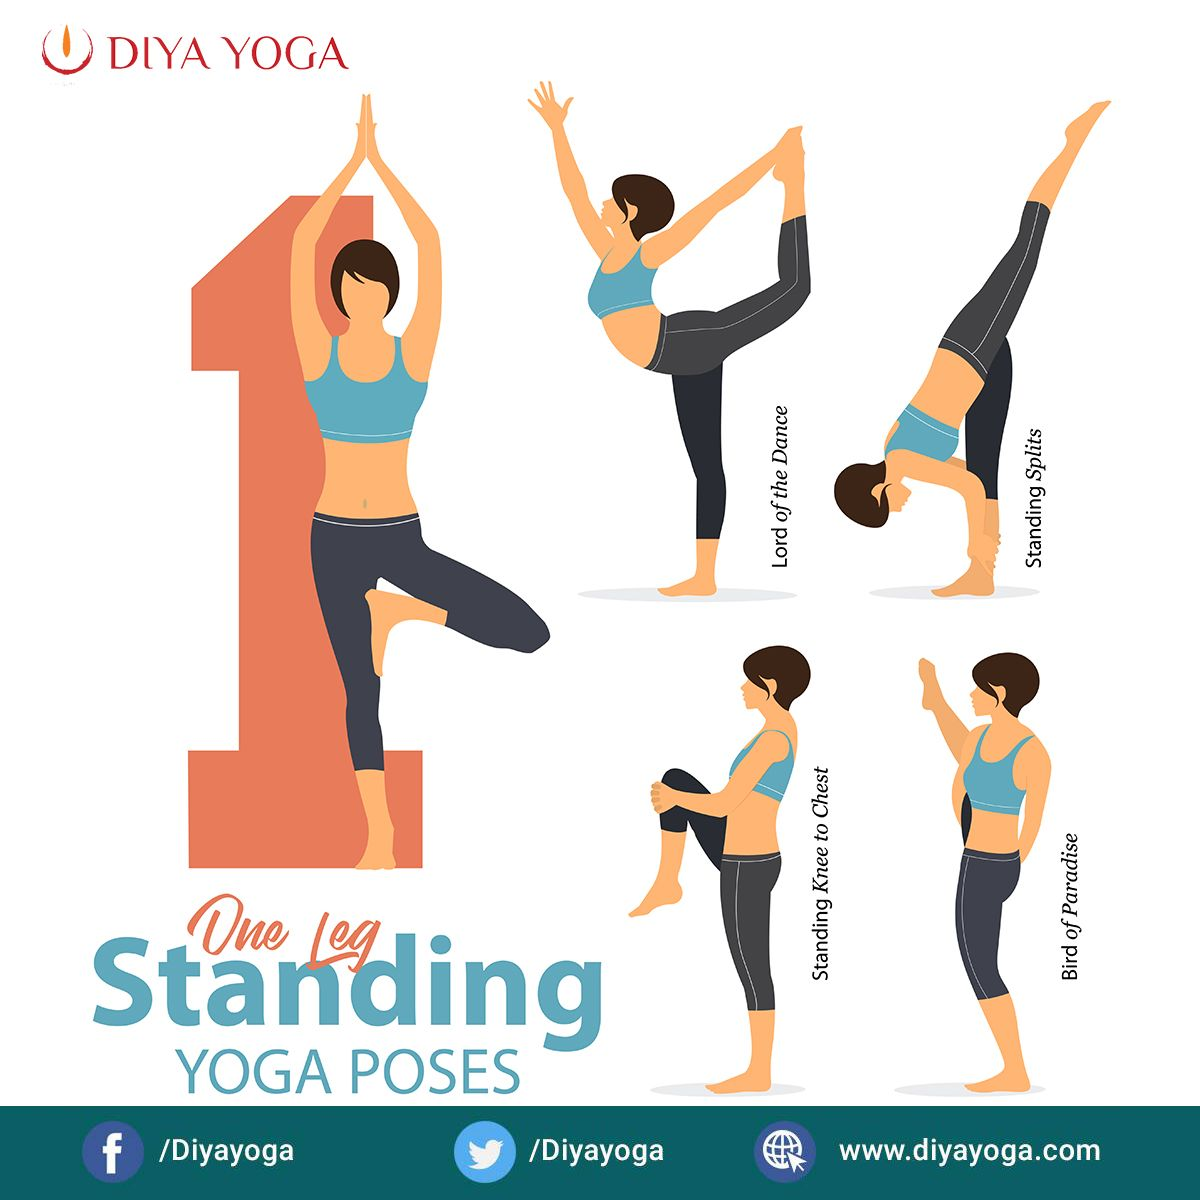 One Leg Standing Yoga Poses To Improve Your Balance Standing Yoga Poses Easy Yoga Workouts Standing Yoga